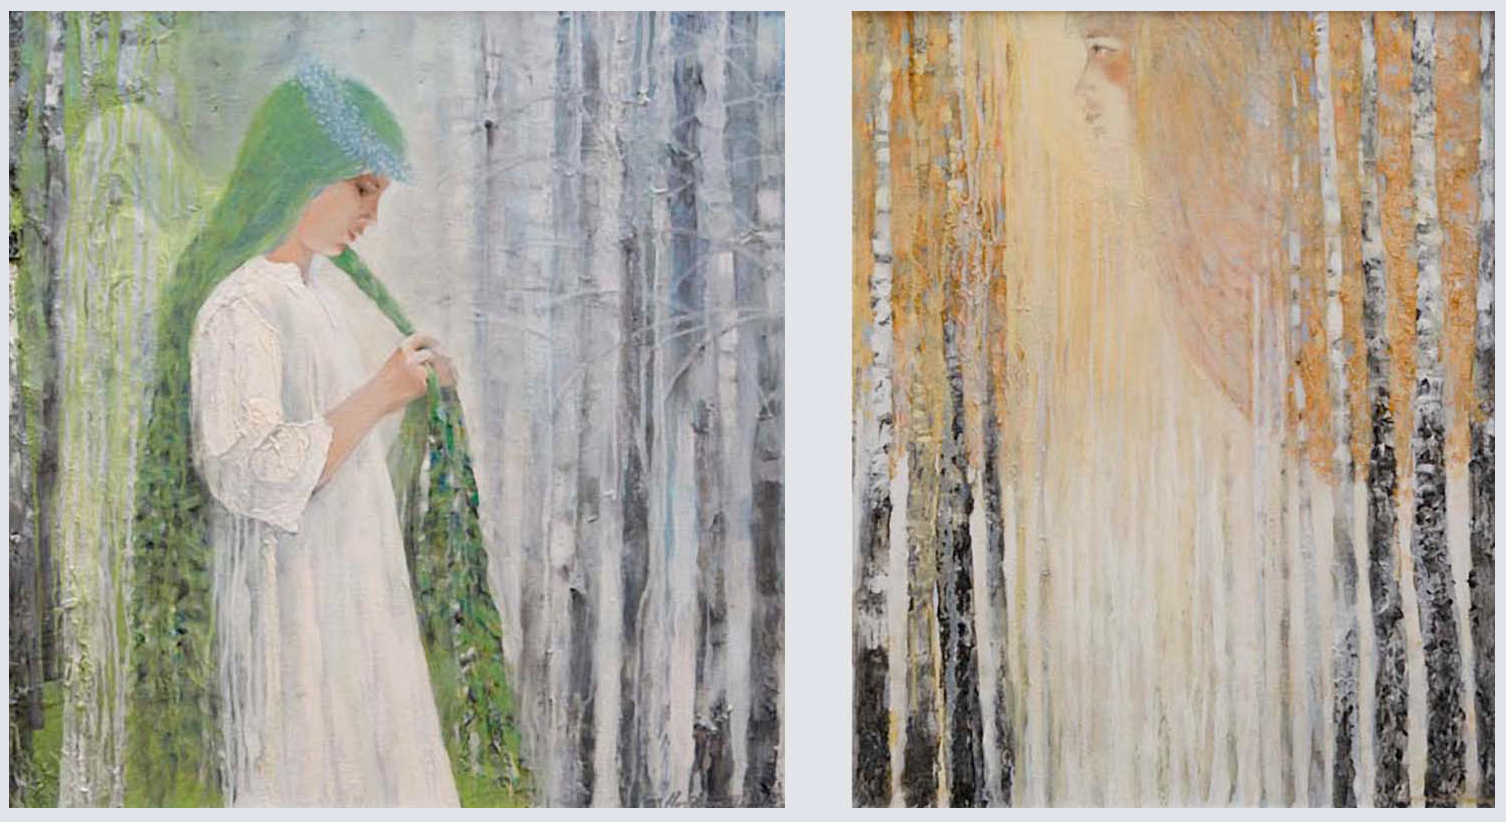 Two Ages (Spring Teen... and Autumn/Bride Pregnant in Future Spring) Diptych